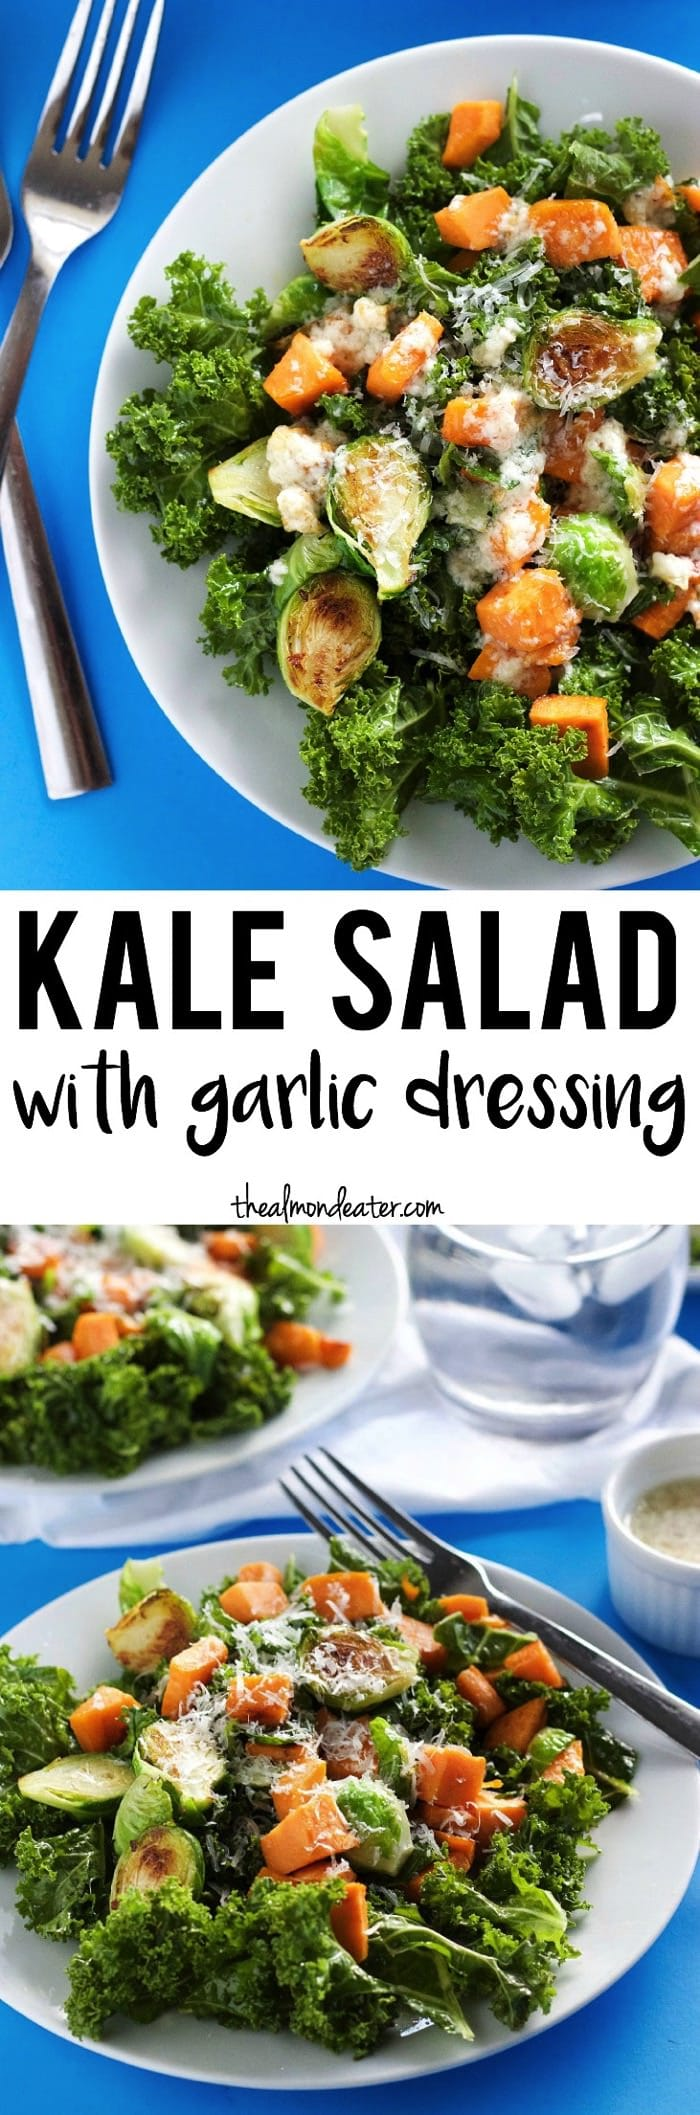 Kale Salad with Garlic Dressing-The Almond Eater